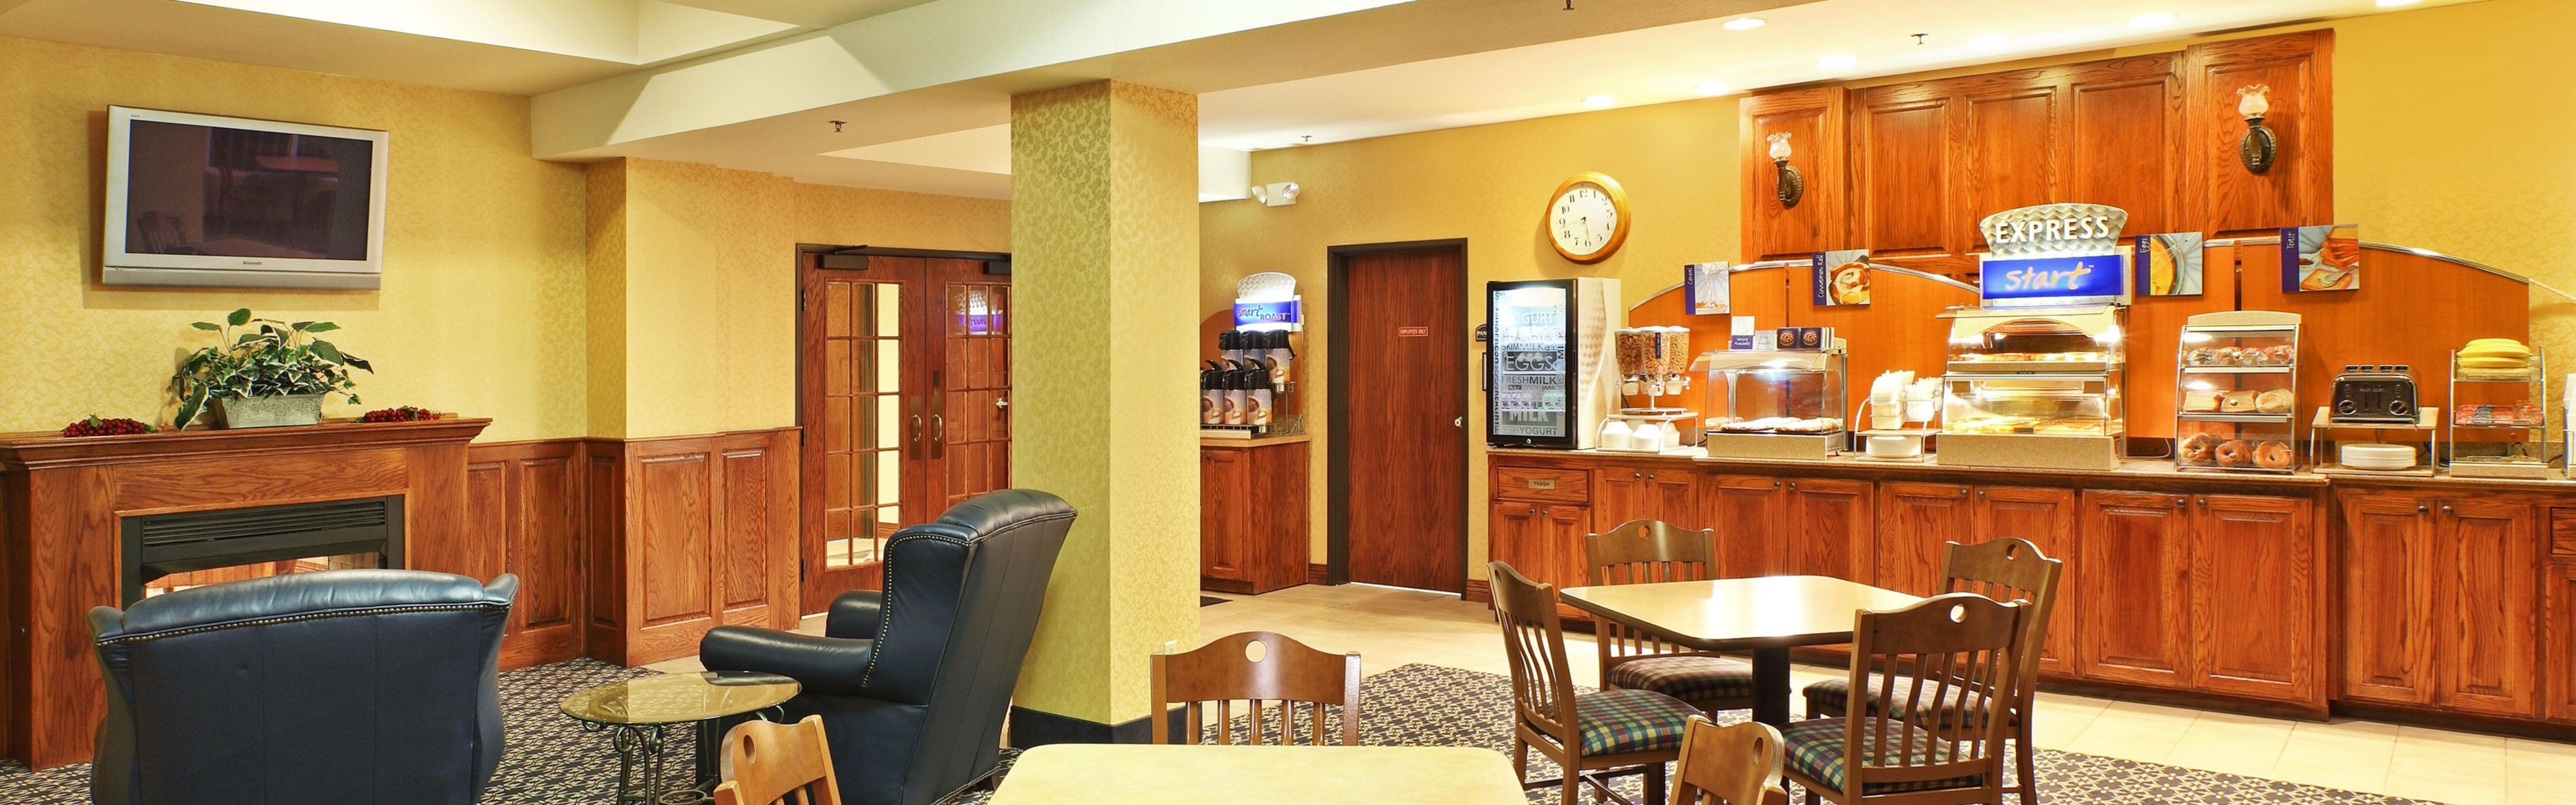 Holiday inn express mountain home coupons mountain home ar for Mountain house coupon